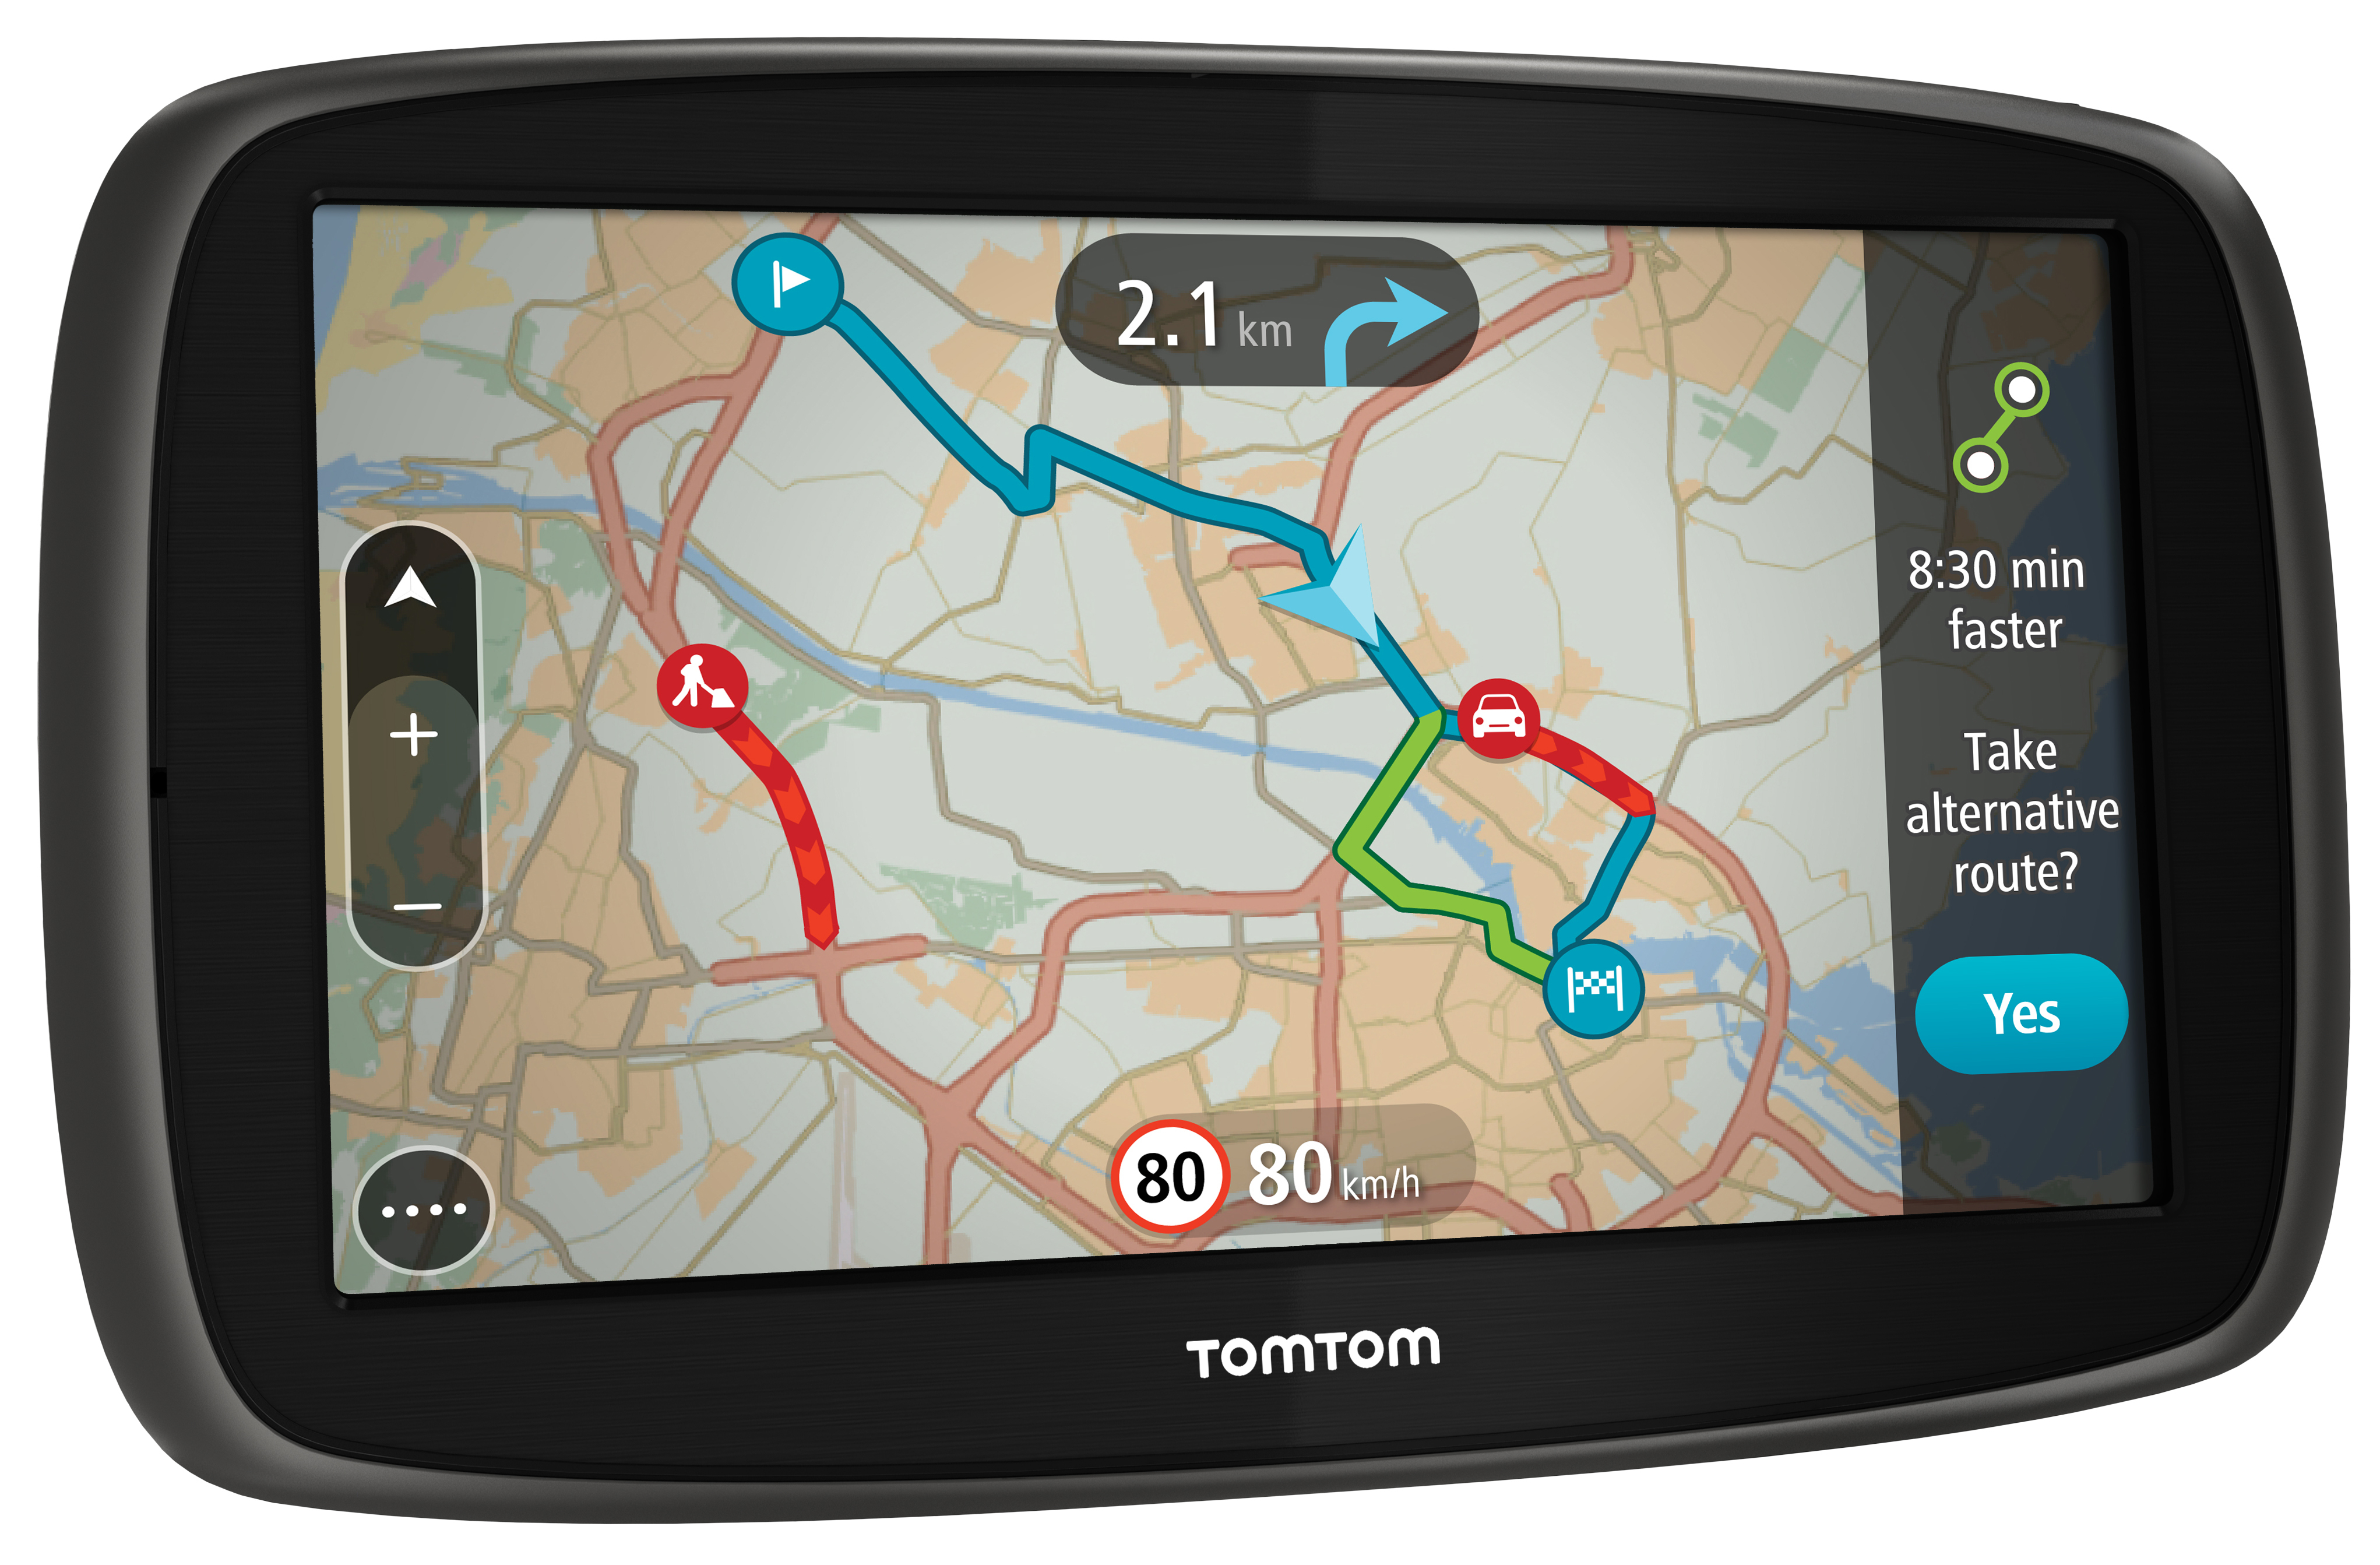 Tomtom expands range of go navigation devices with lifetime world tomtom global press office greg morrison global pr manager gregrrison tomtom or investor relations bisera grubesic gumiabroncs Image collections